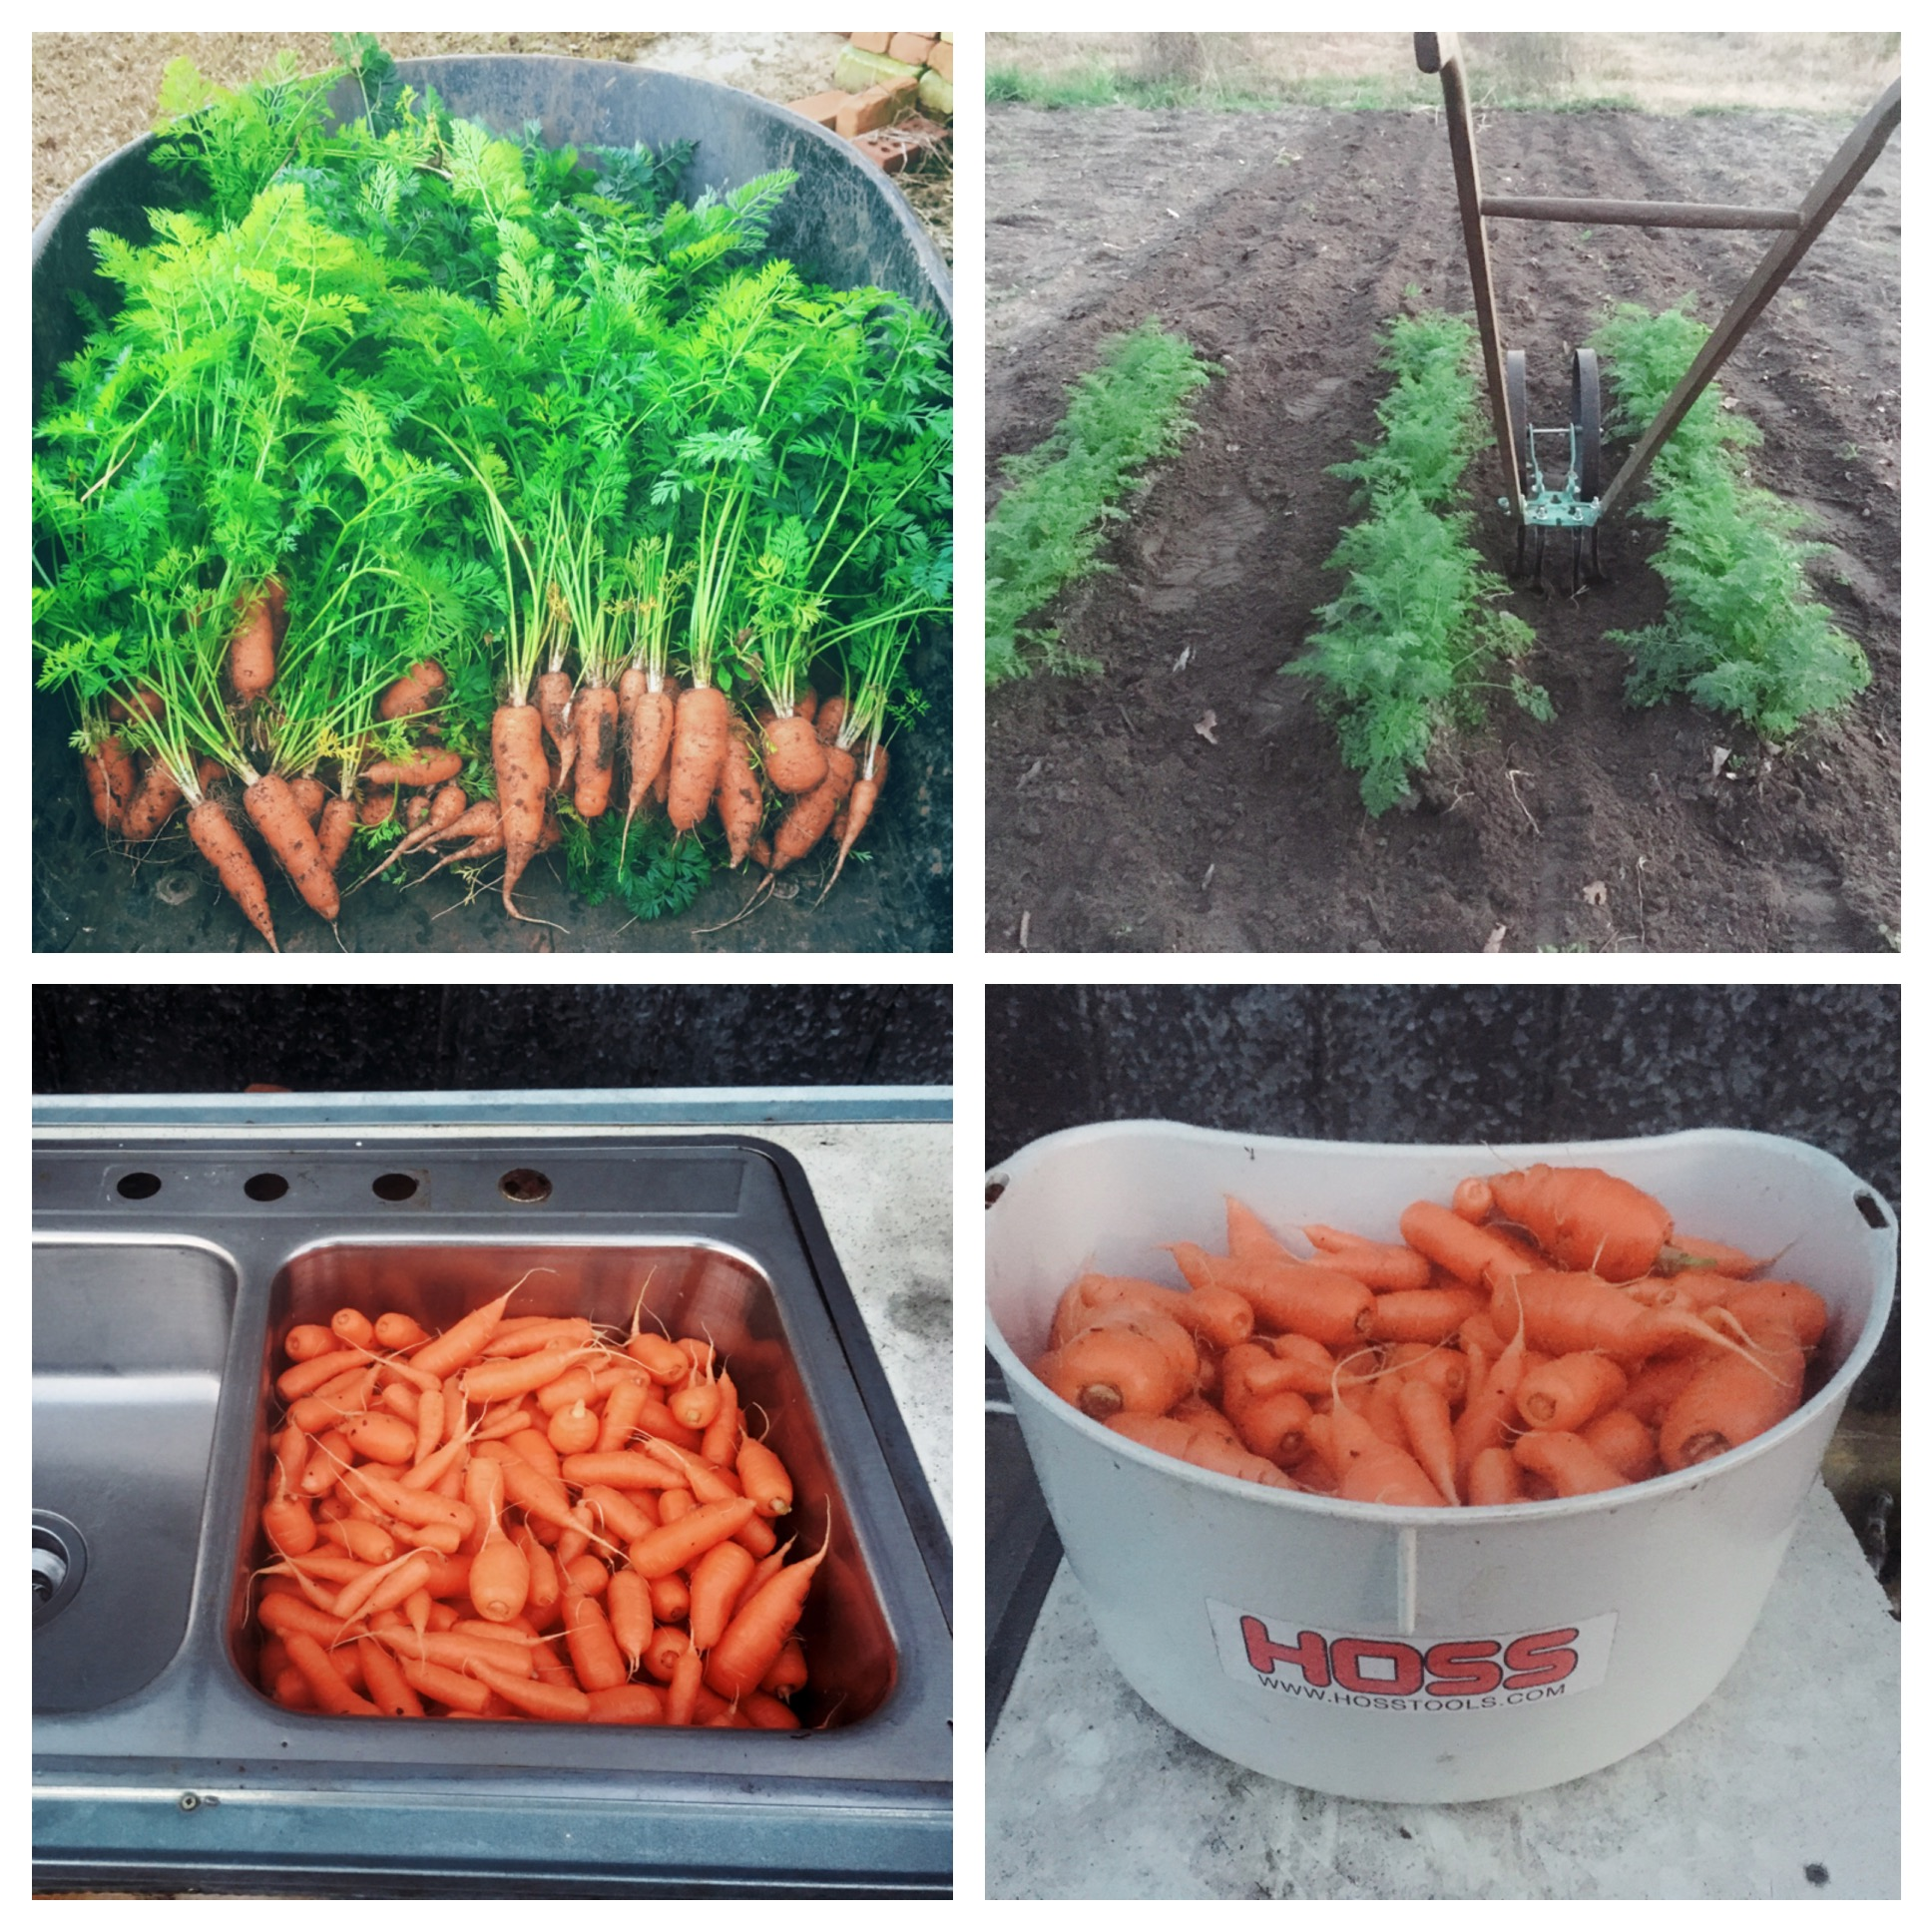 Pelleted Carrot Seed Planting Carrots With A Garden Seeder